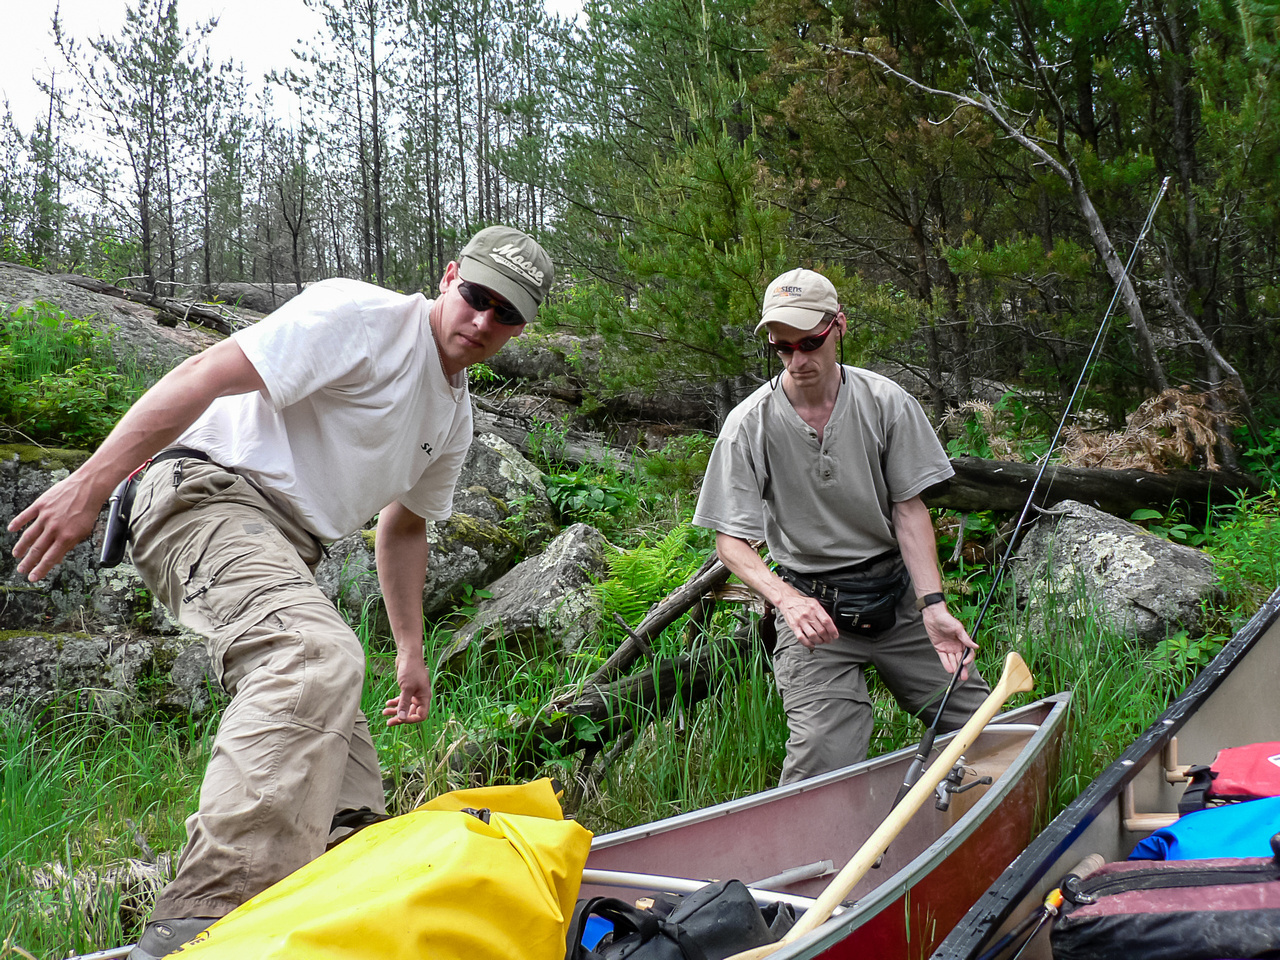 Harold steps into the canoe after another portage.